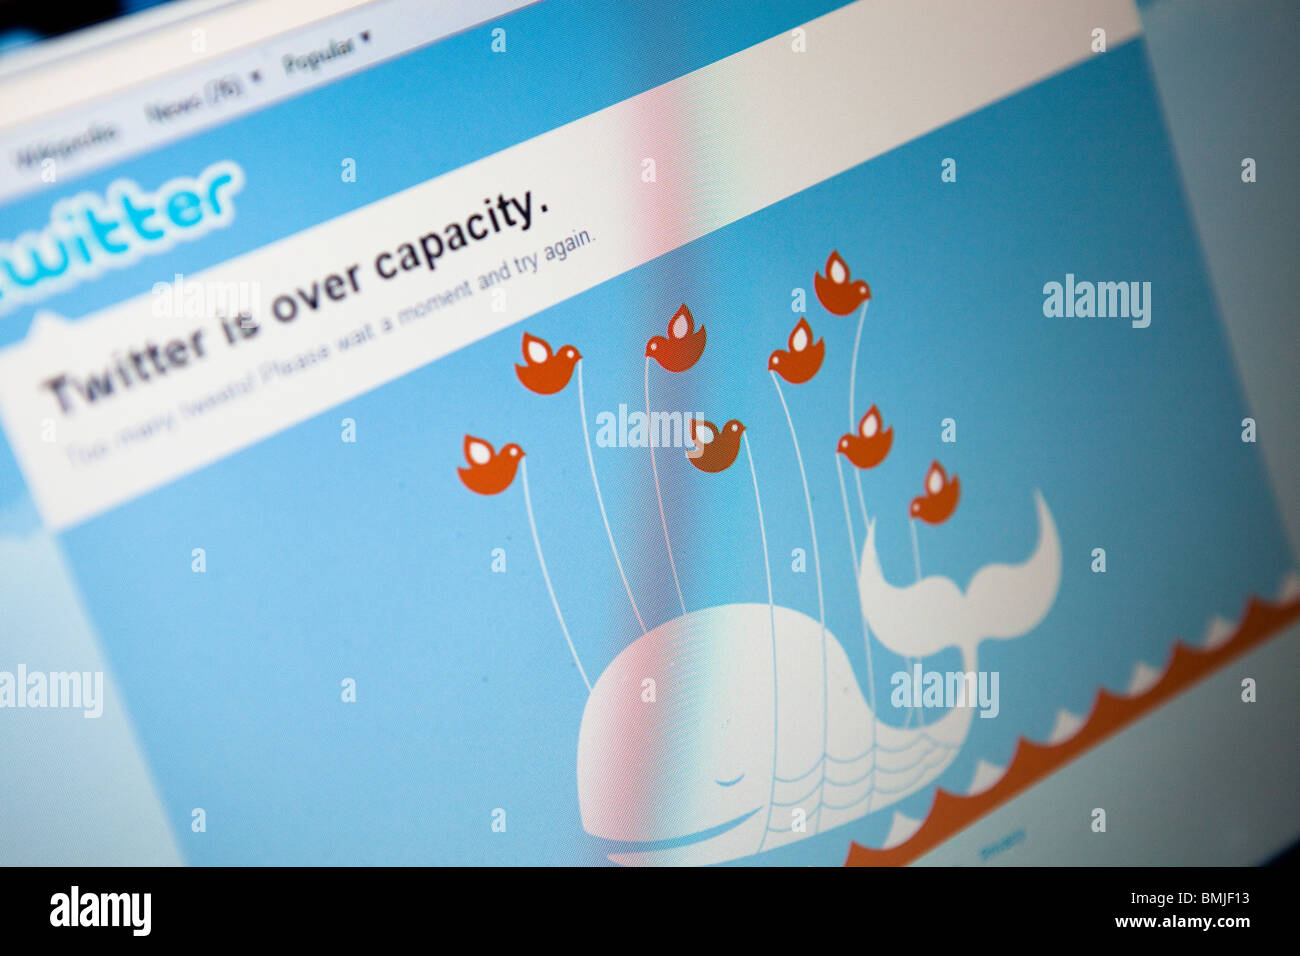 Close up of a computer monitor / screen showing the website Twitter over capacity due to too many people using it - Stock Image